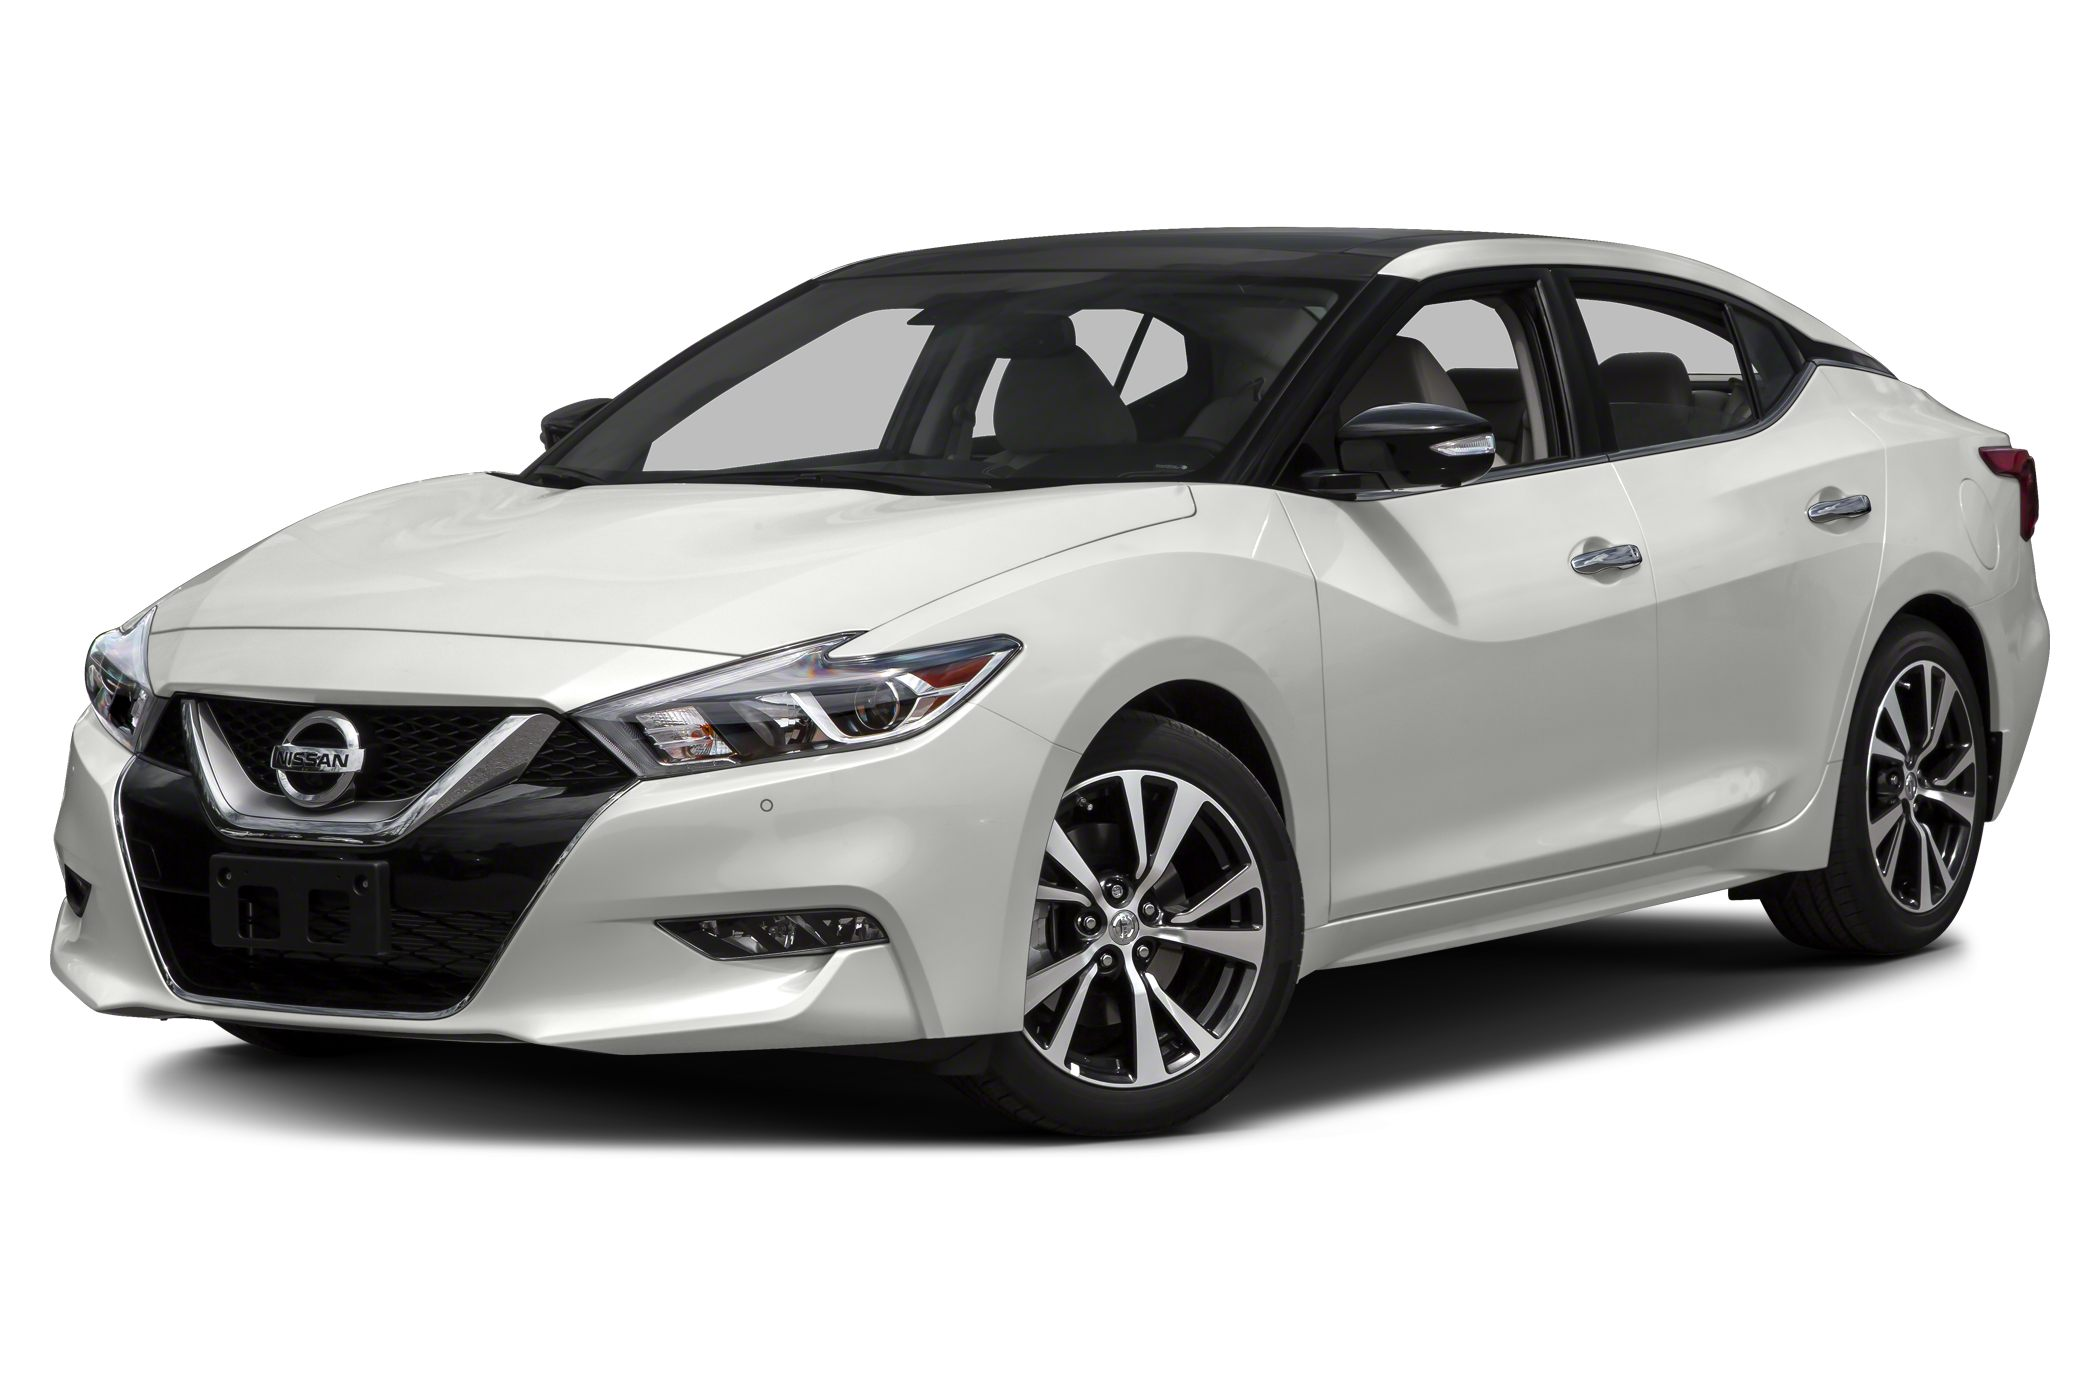 2016 nissan maxima first drive w video. Black Bedroom Furniture Sets. Home Design Ideas